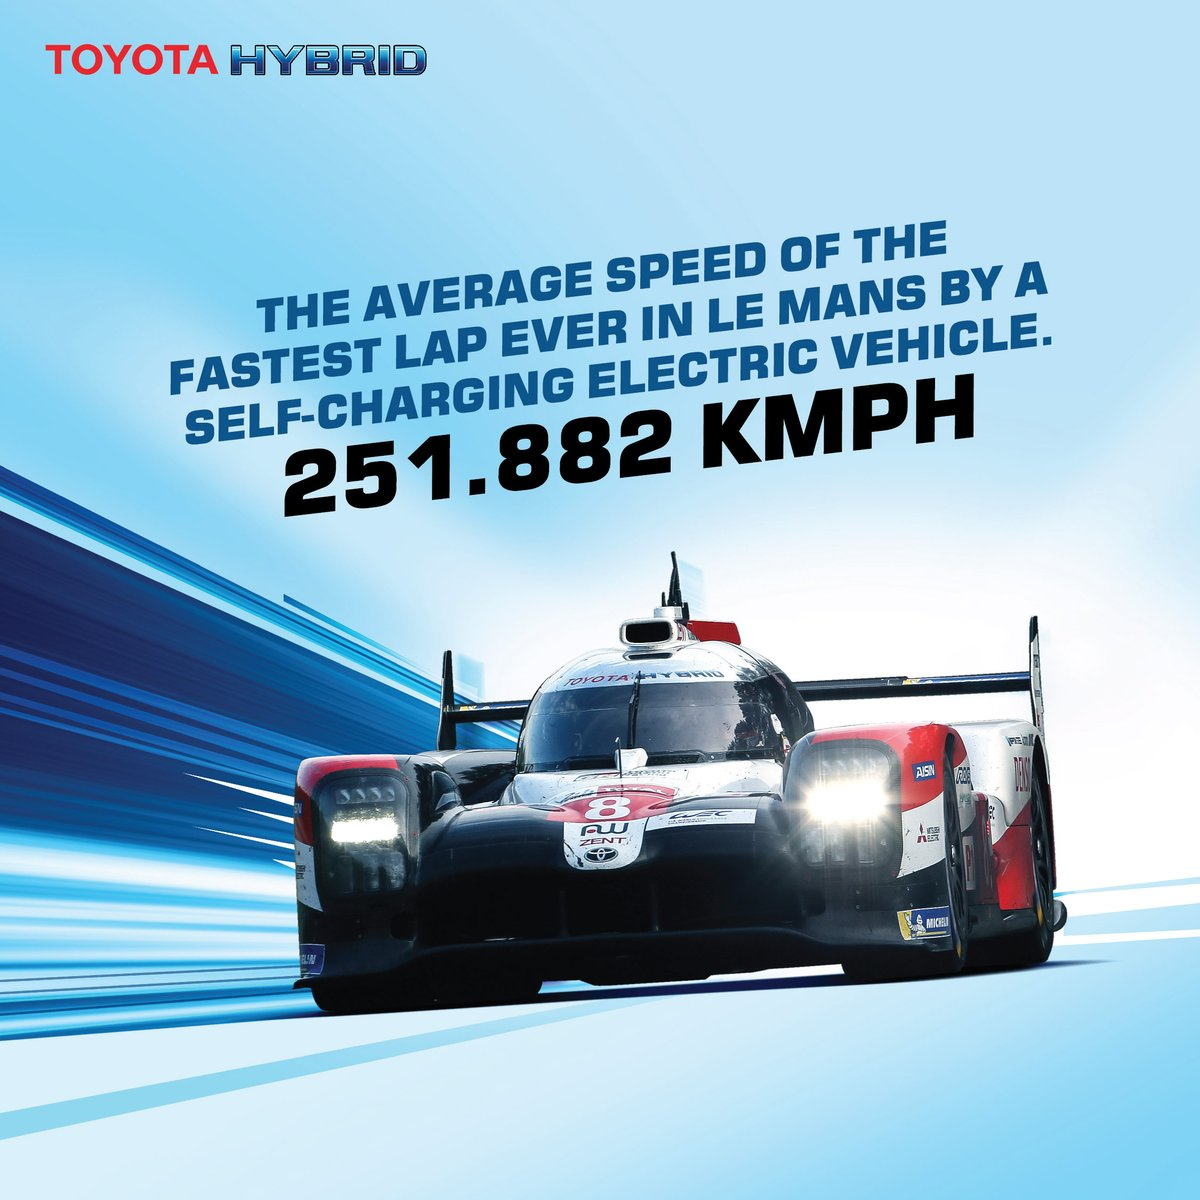 Toyota's self-charging hybrids are engineered to utilise power from their combustion engine as well as the hybrid electric system to propel them forward faster. Often hitting blinding speeds in excess of 350 kmph. #ToyotaHybrid #LeMans24 #ToyotaGAZOORacing #SelfCharging https://t.co/sXiVNTCBob